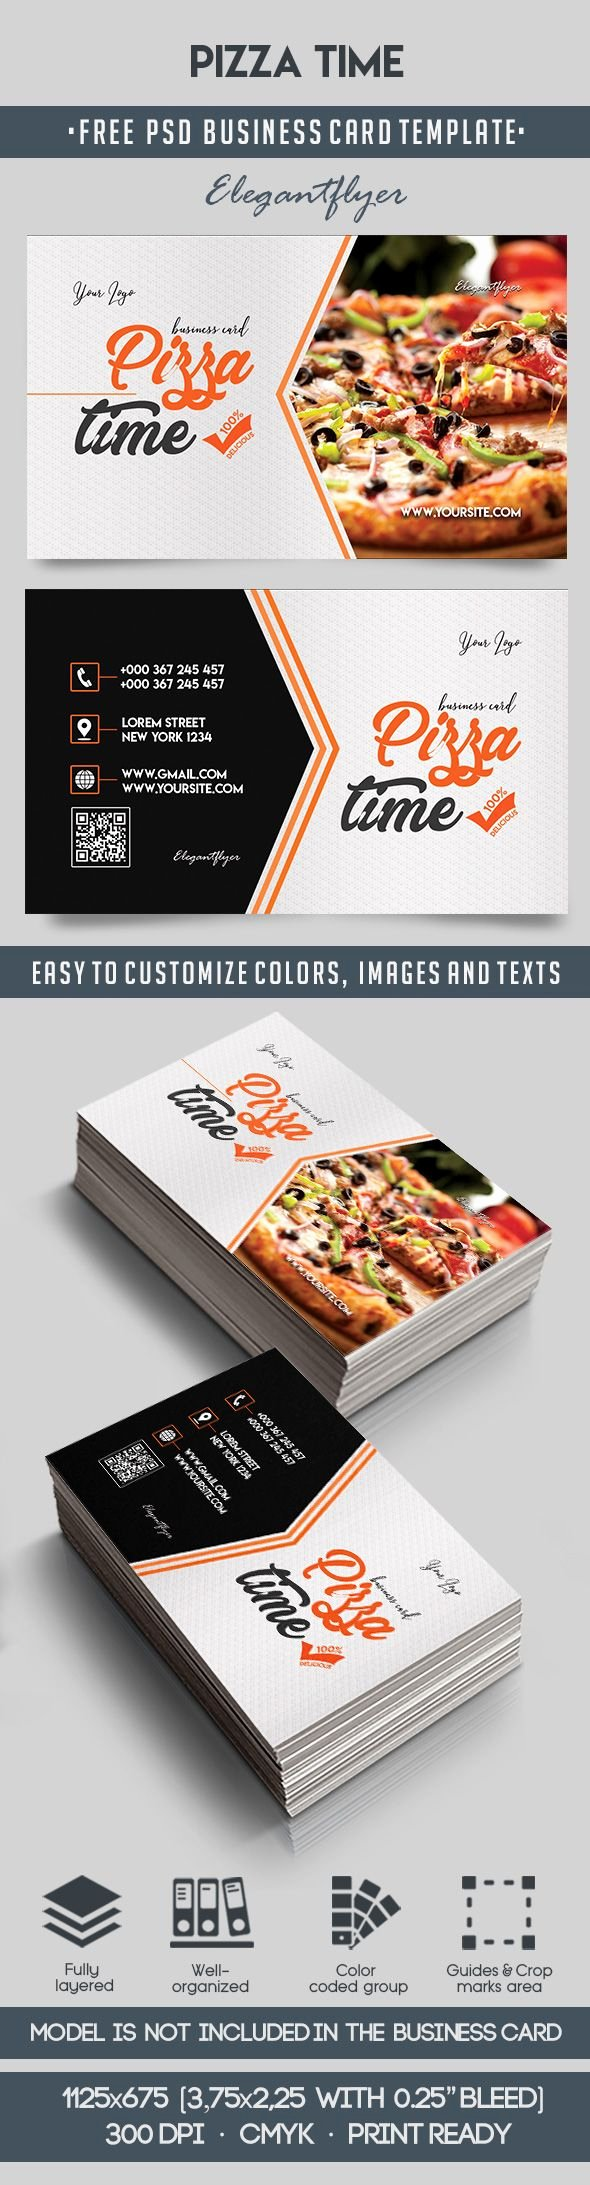 Pizza Gift Certificate Template Elegant Pizza Time – Free Business Card Templates Psd – by